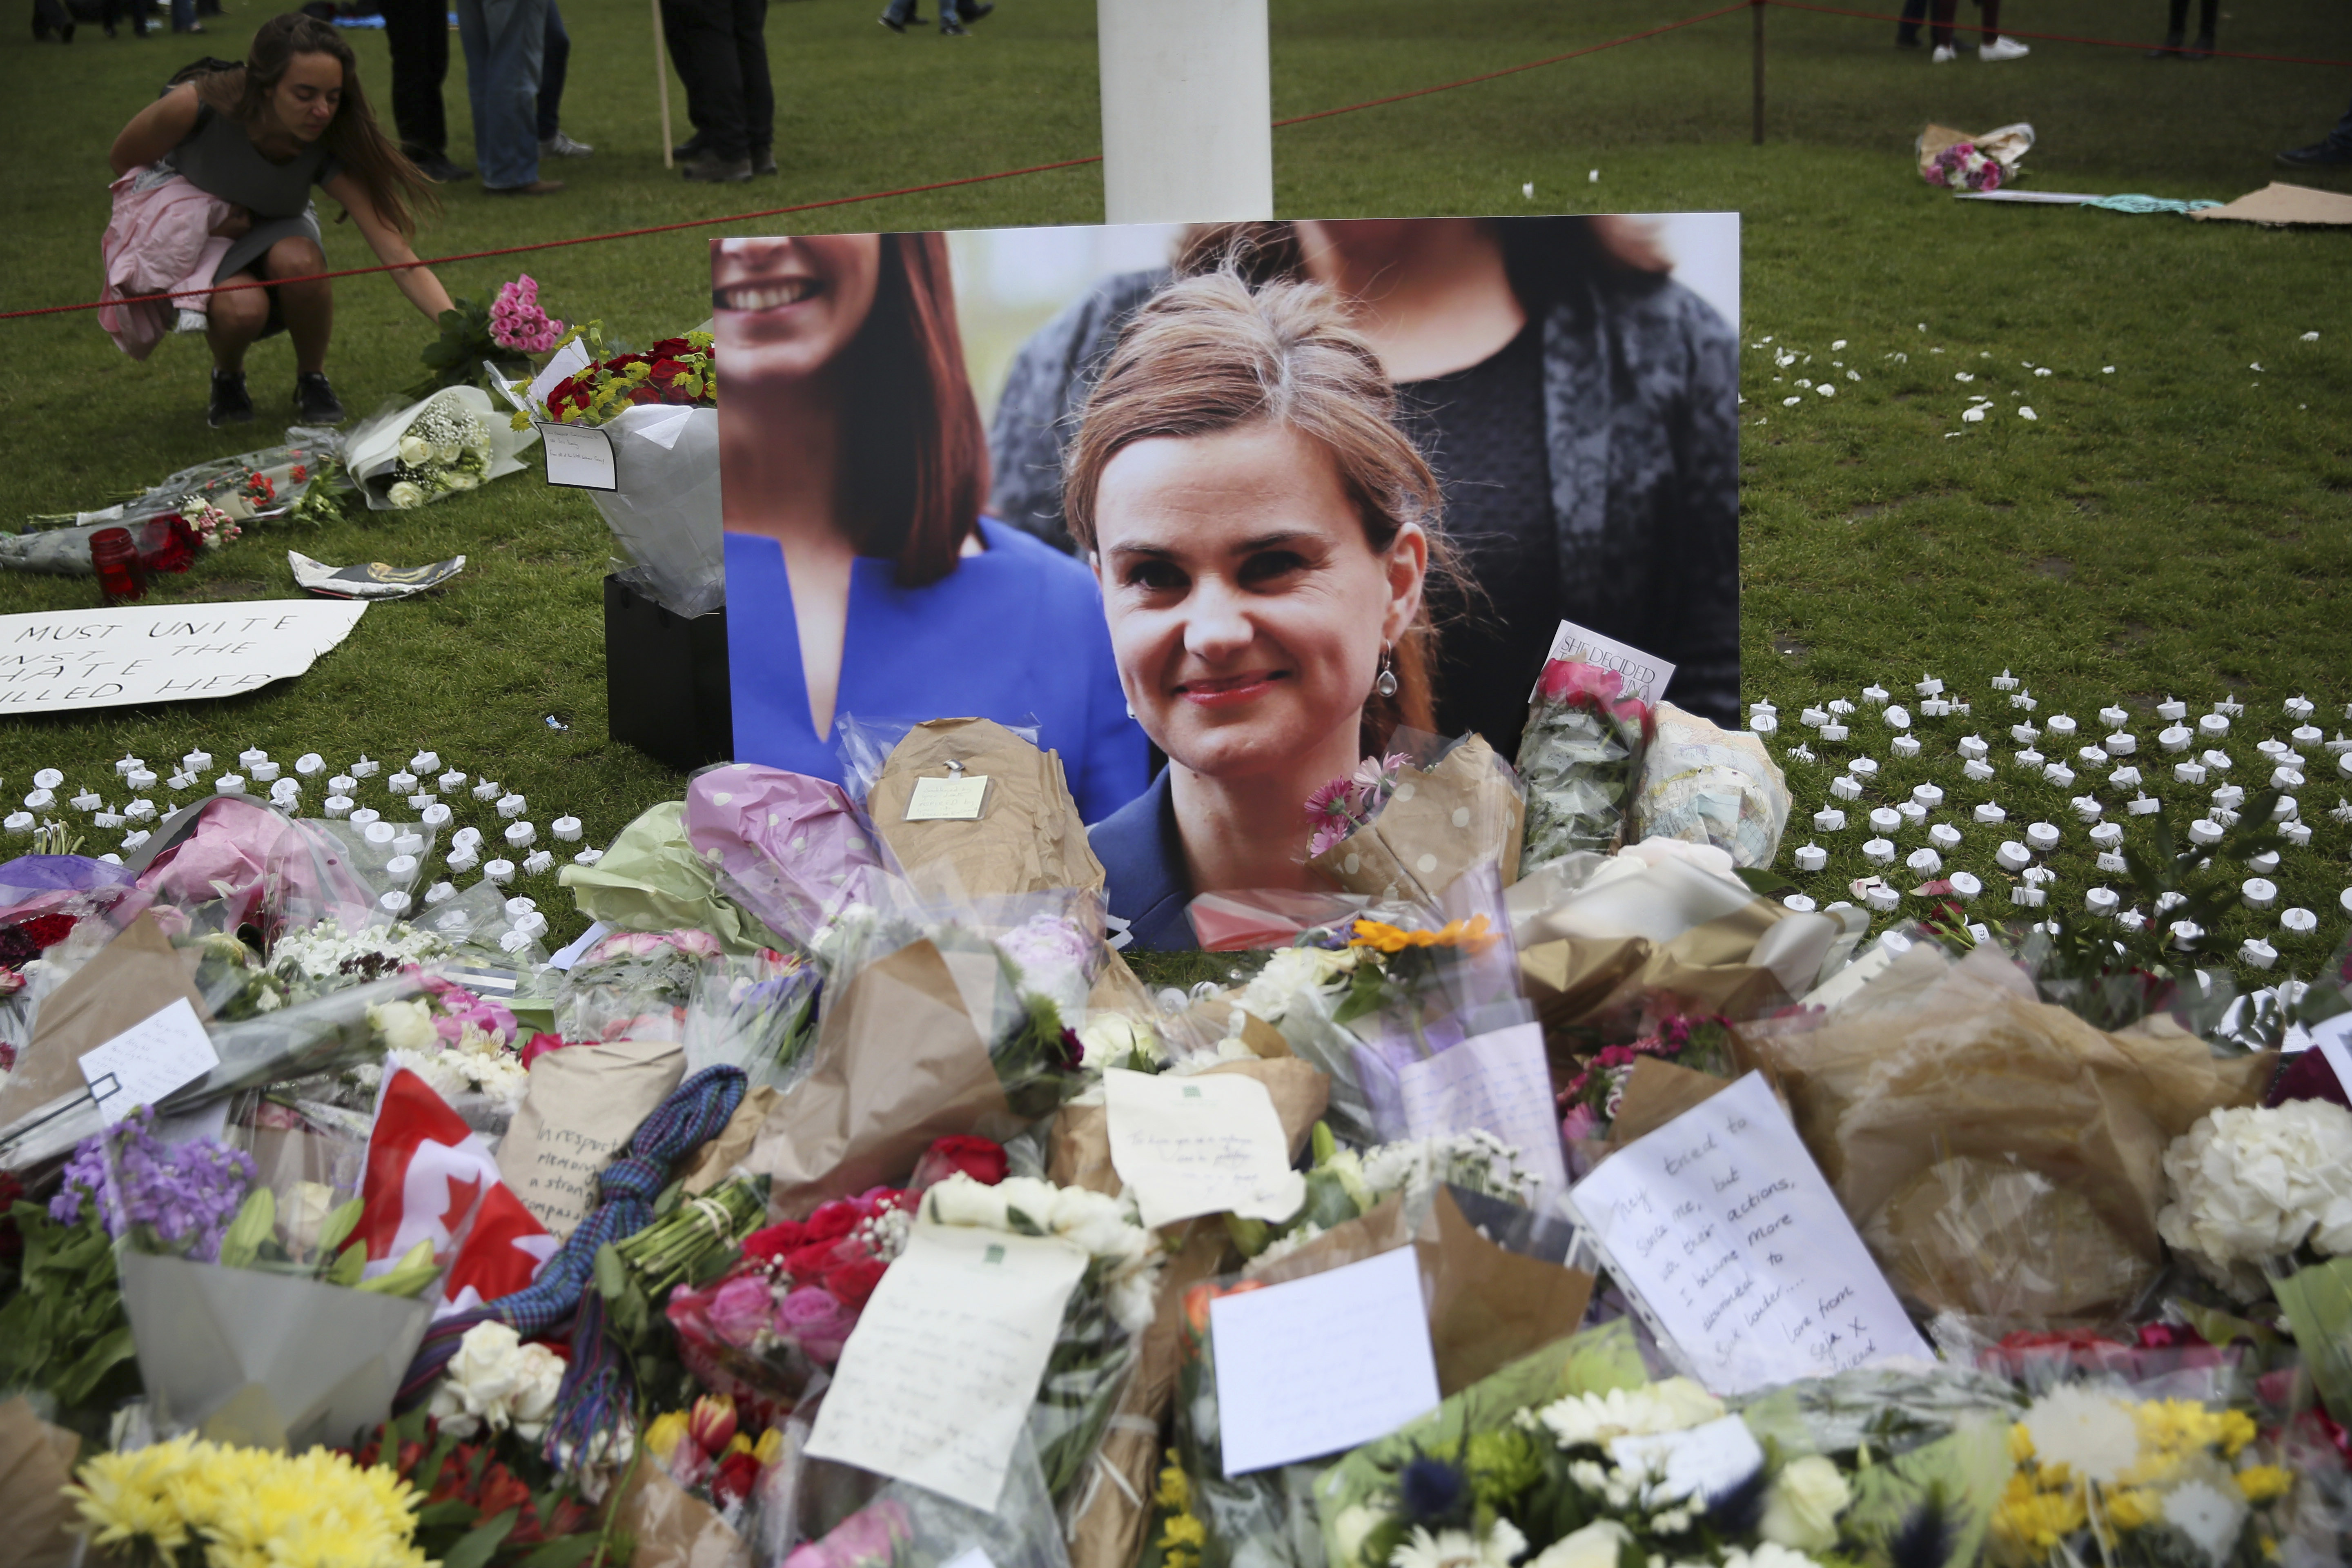 Tributes in memory of murdered Labour Party MP Jo Cox, who was shot dead in Birstall, are left at Parliament Square in London,